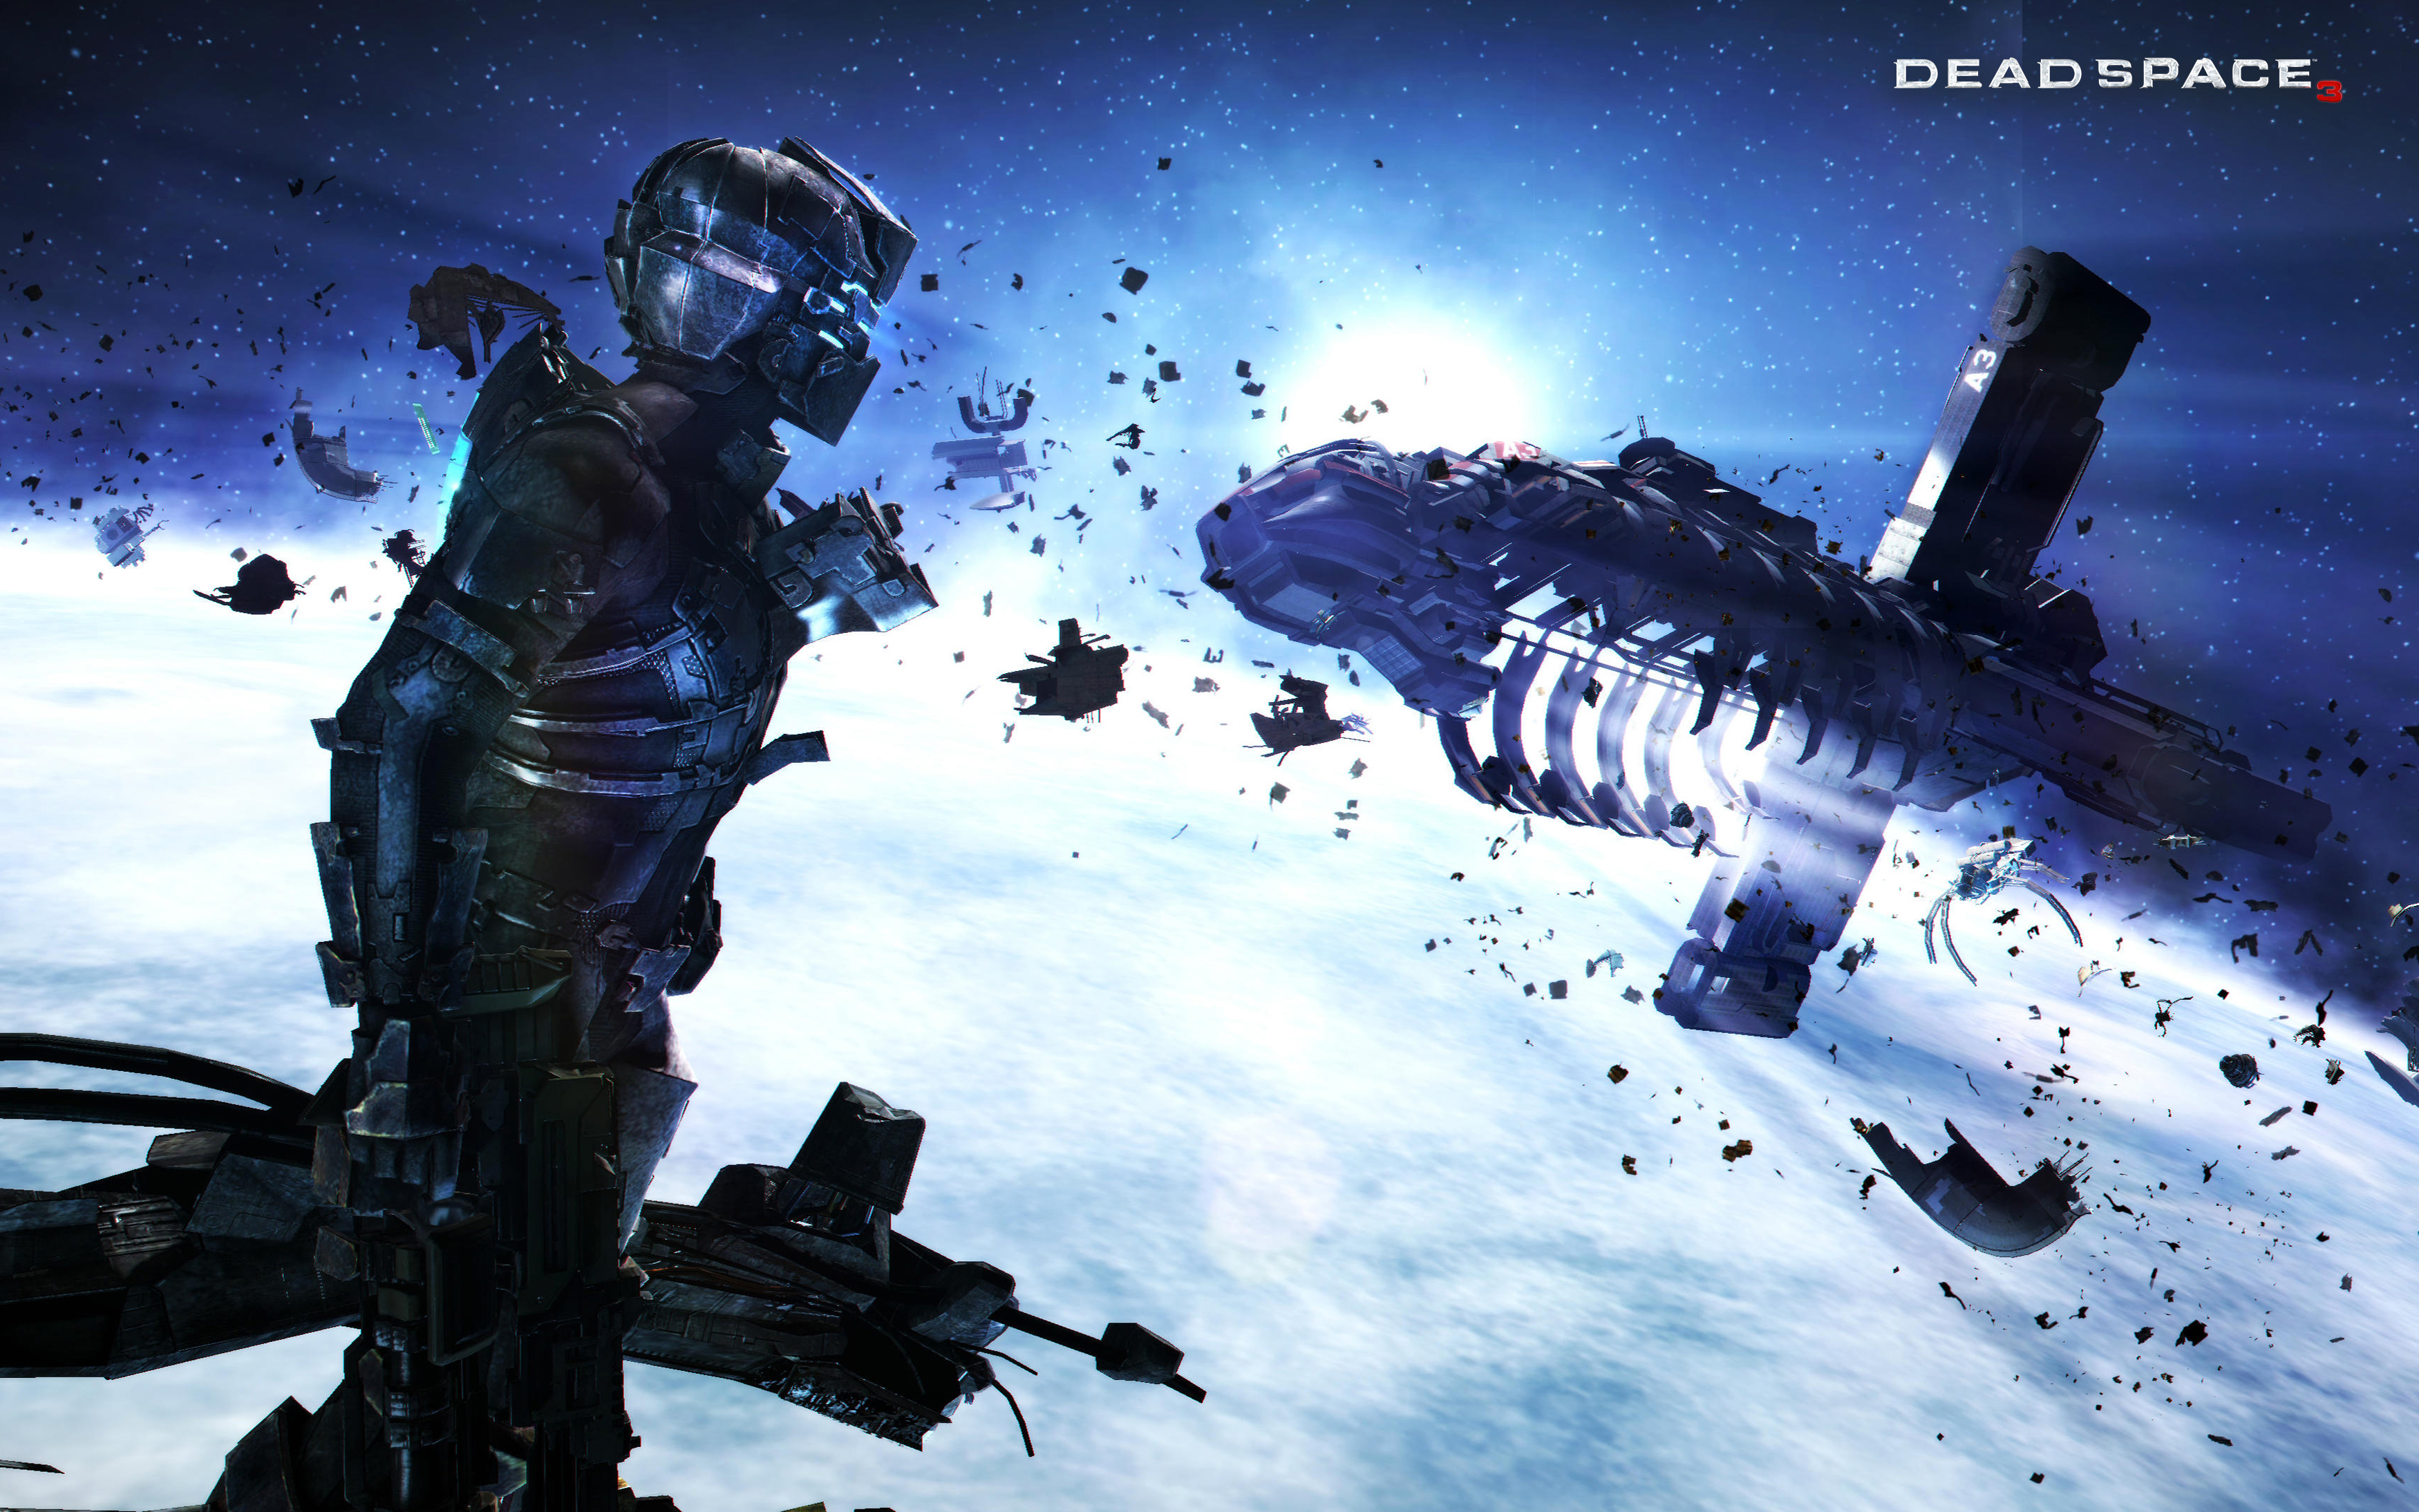 2013 Dead Space 3 Game Wallpapers HD Wallpapers 3500x2188